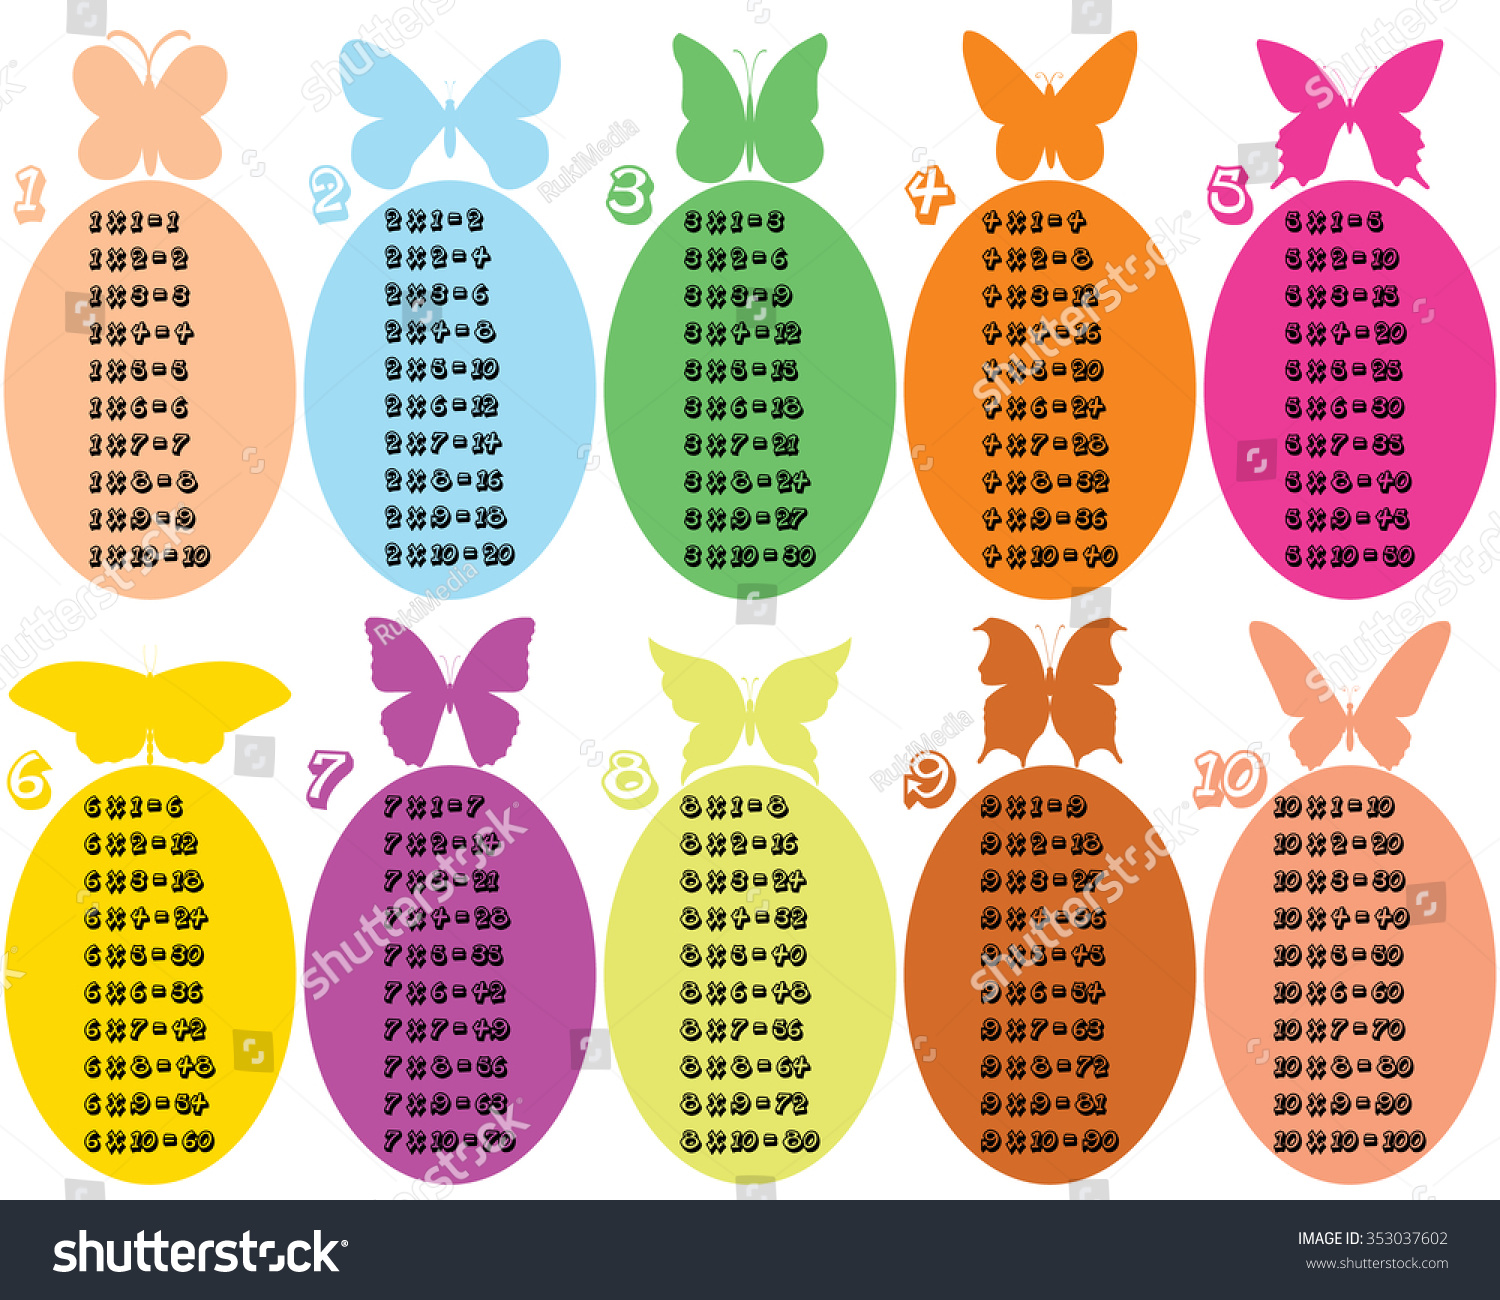 Colorful multiplication table between 1 to 10 with 10 different and ...